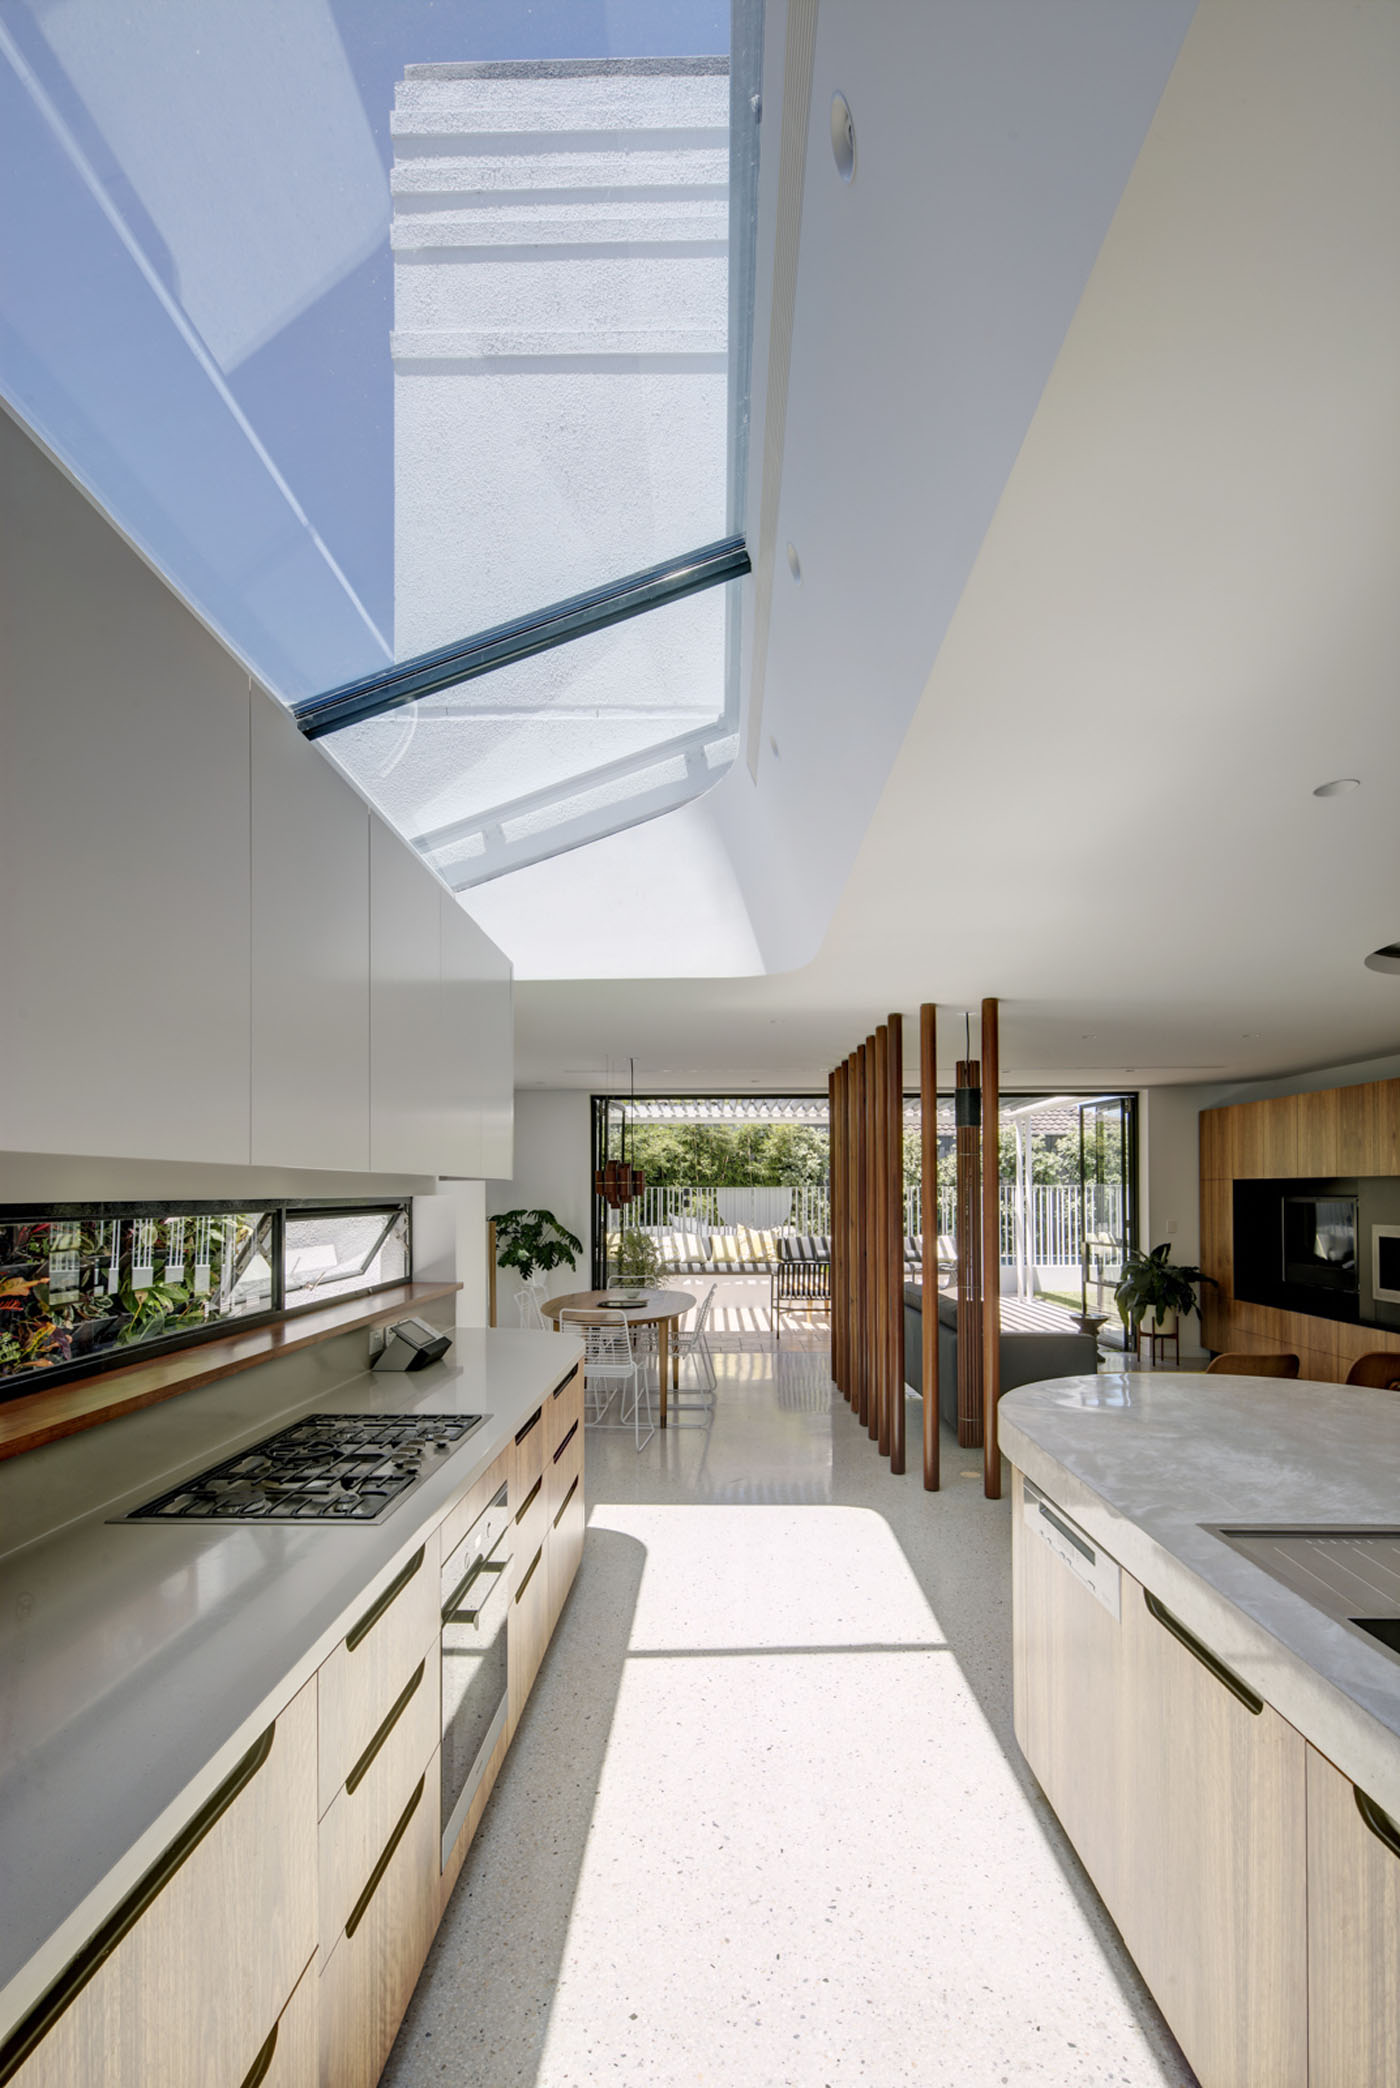 Conway Atkins House in Dover Heights by Sydney architect Sam Crawford Architect. The new kitchen utilises a glass roof to bring light into the living areas.